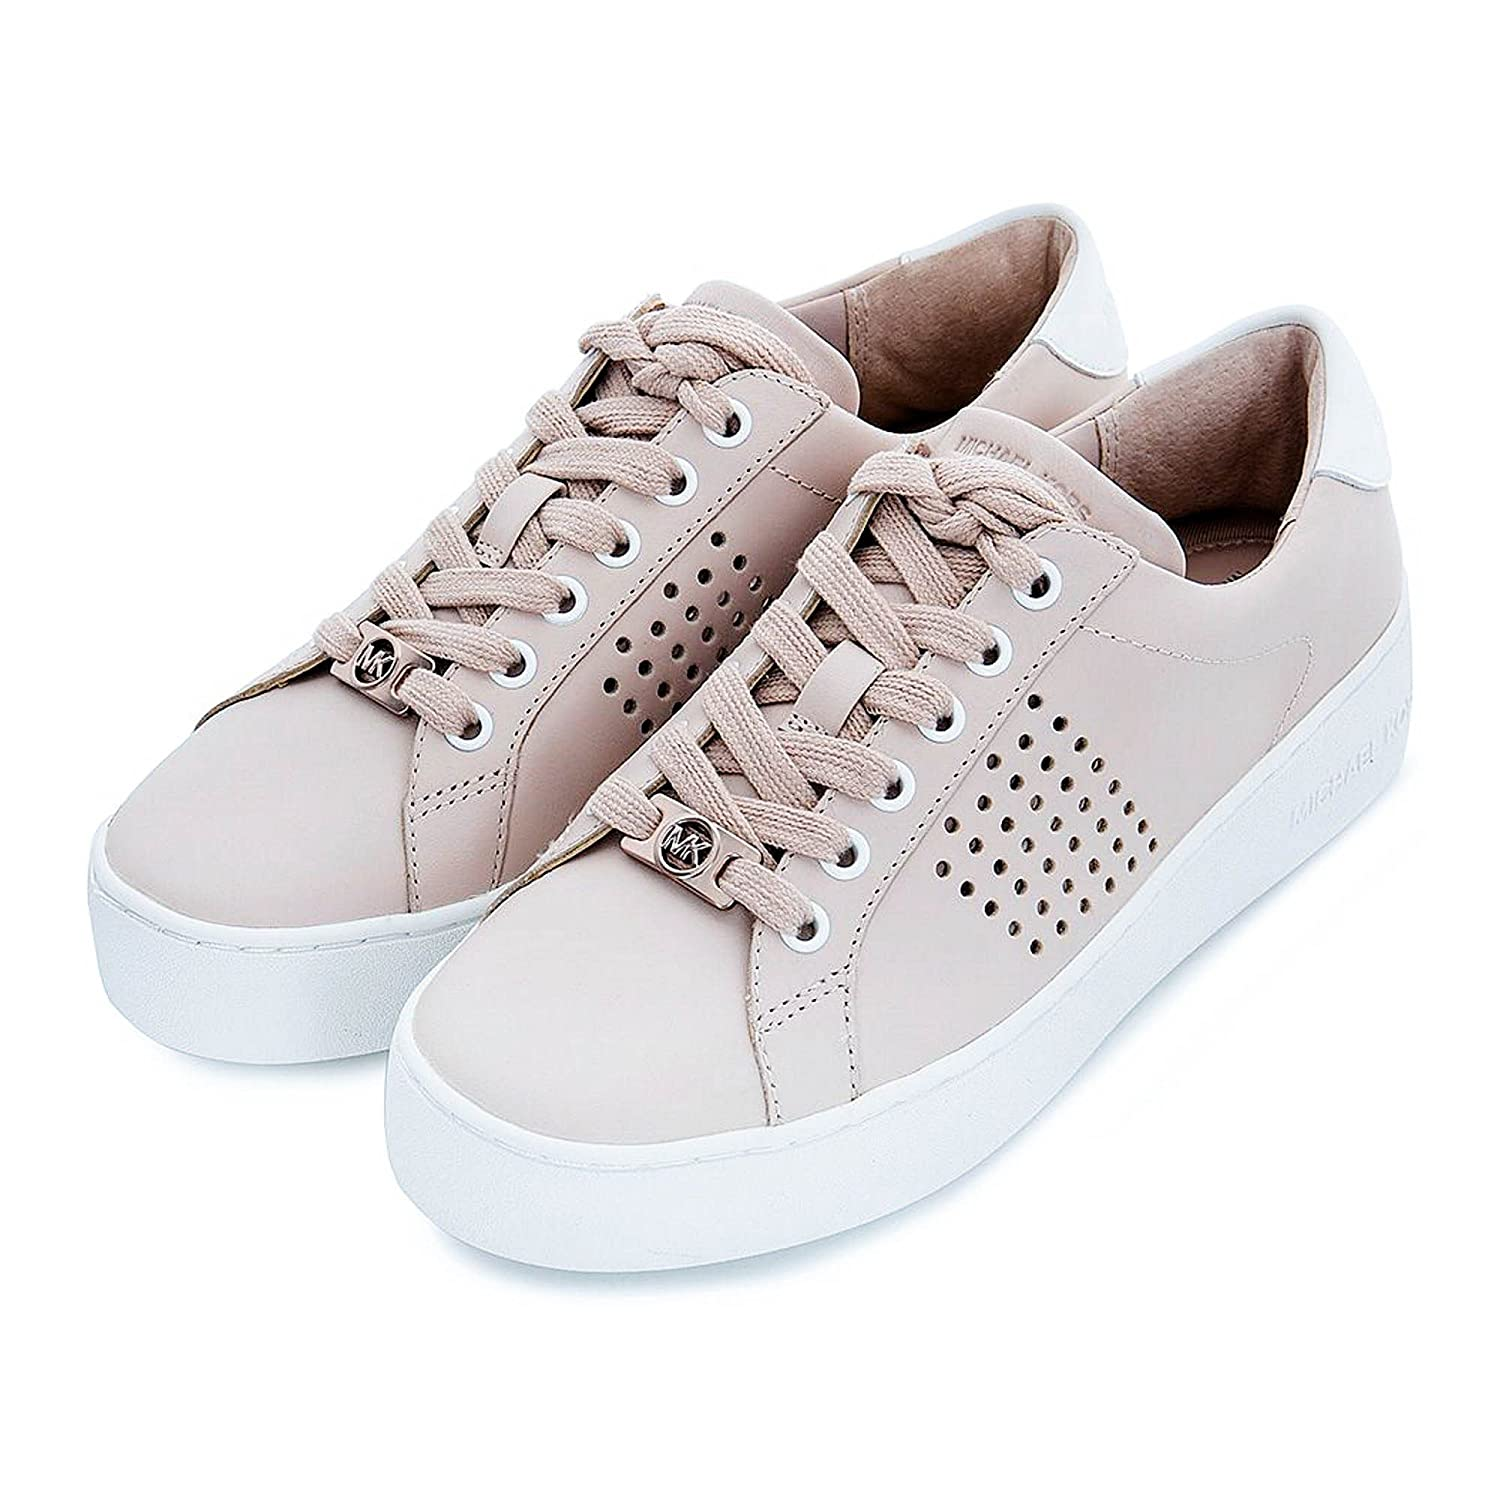 Damen Schuhe Sneakers MICHAEL KORS Poppy Lace Up Lasered